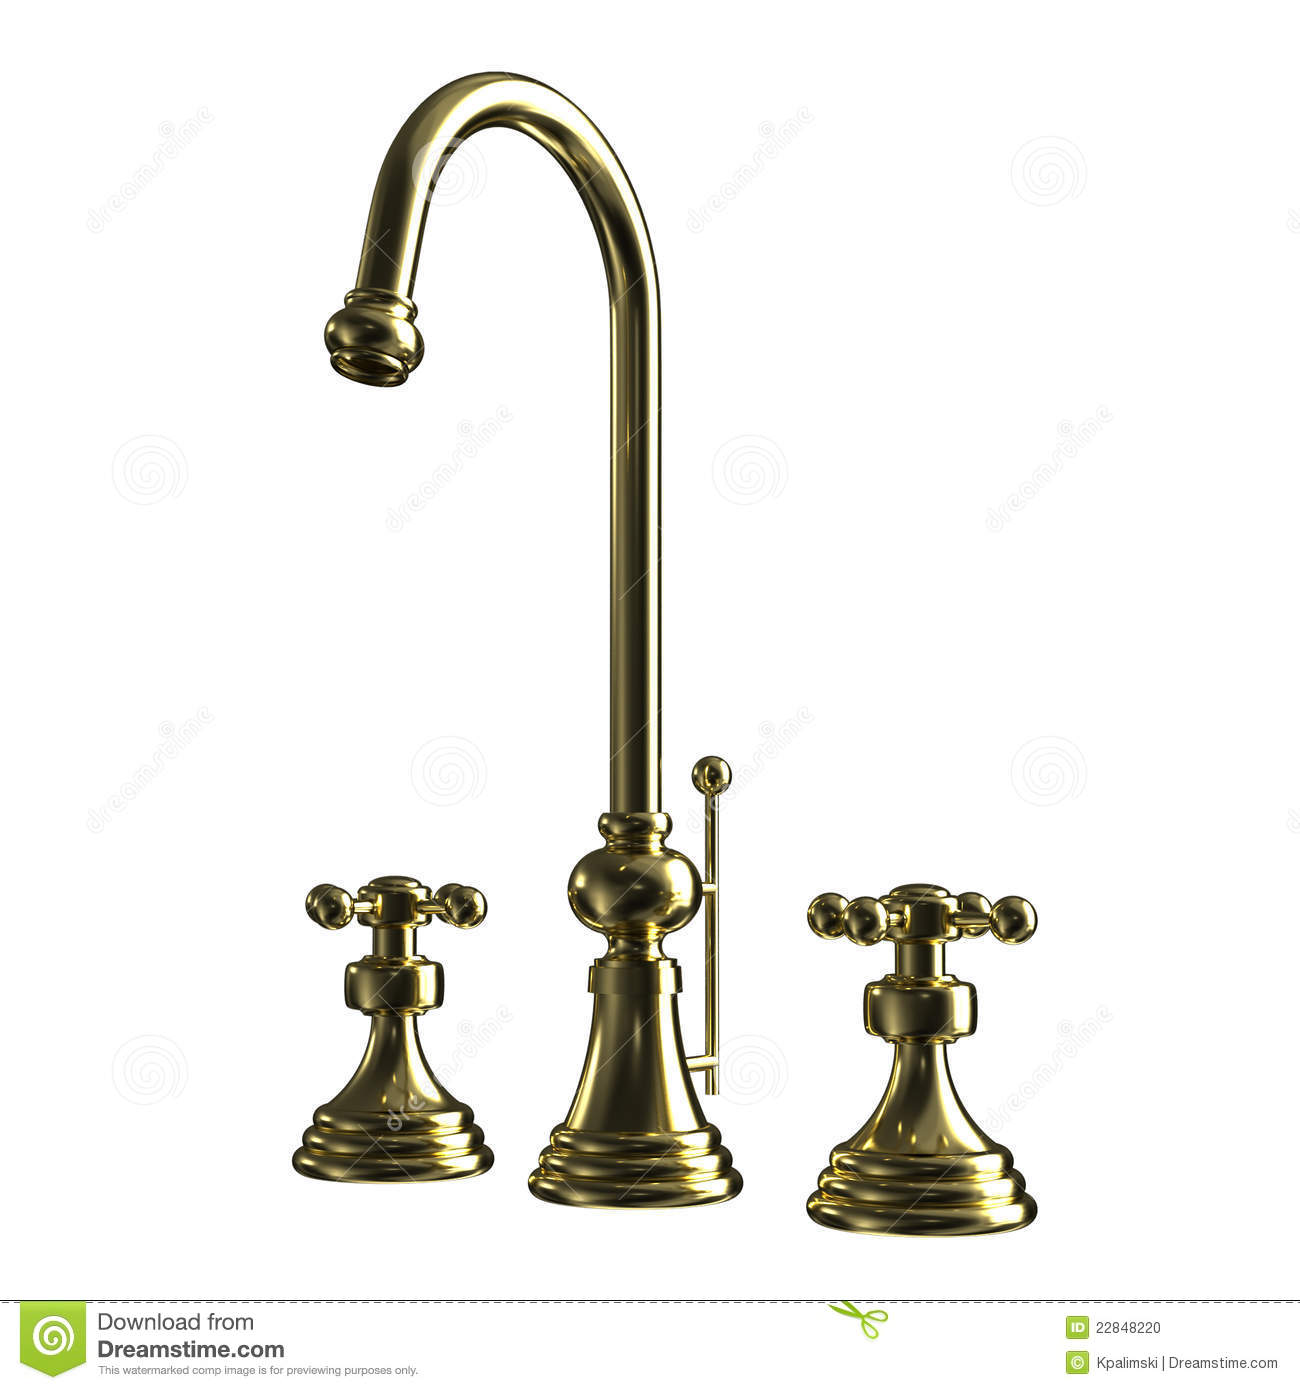 More similar stock images of ` Bathroom or Kitchen Water Tap `